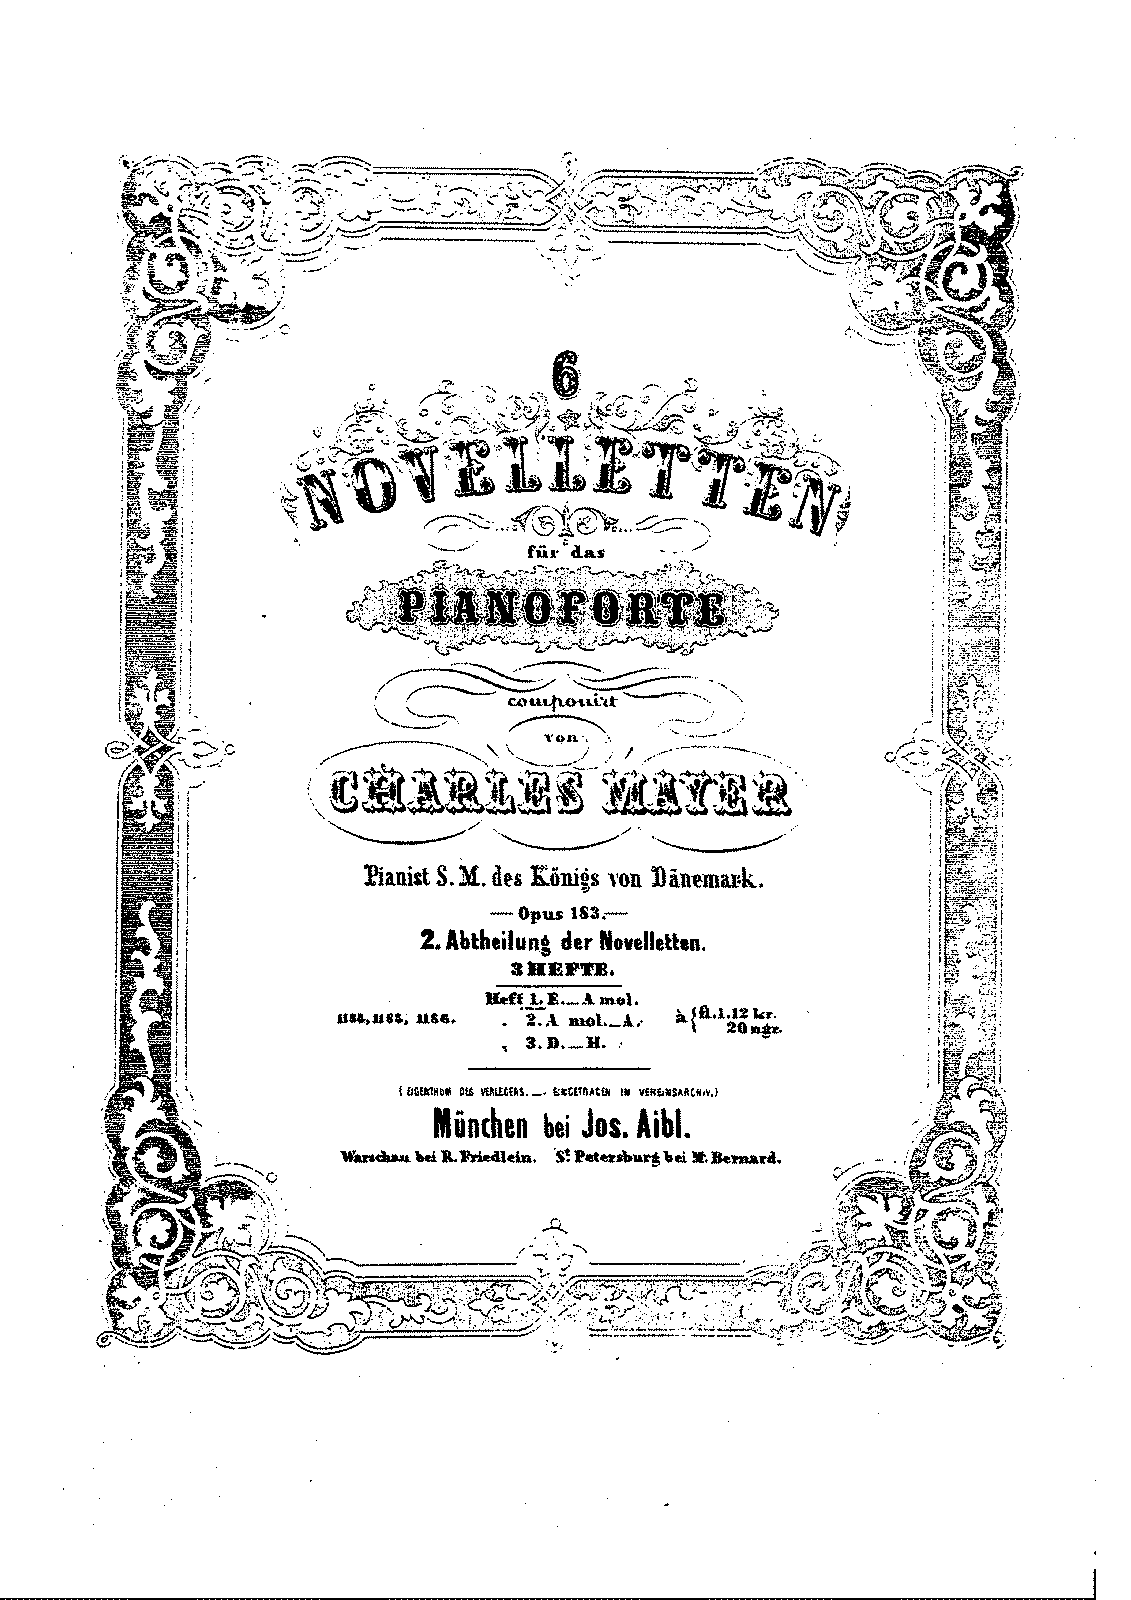 Mayer - Op.183 - 6 Novelletten.pdf